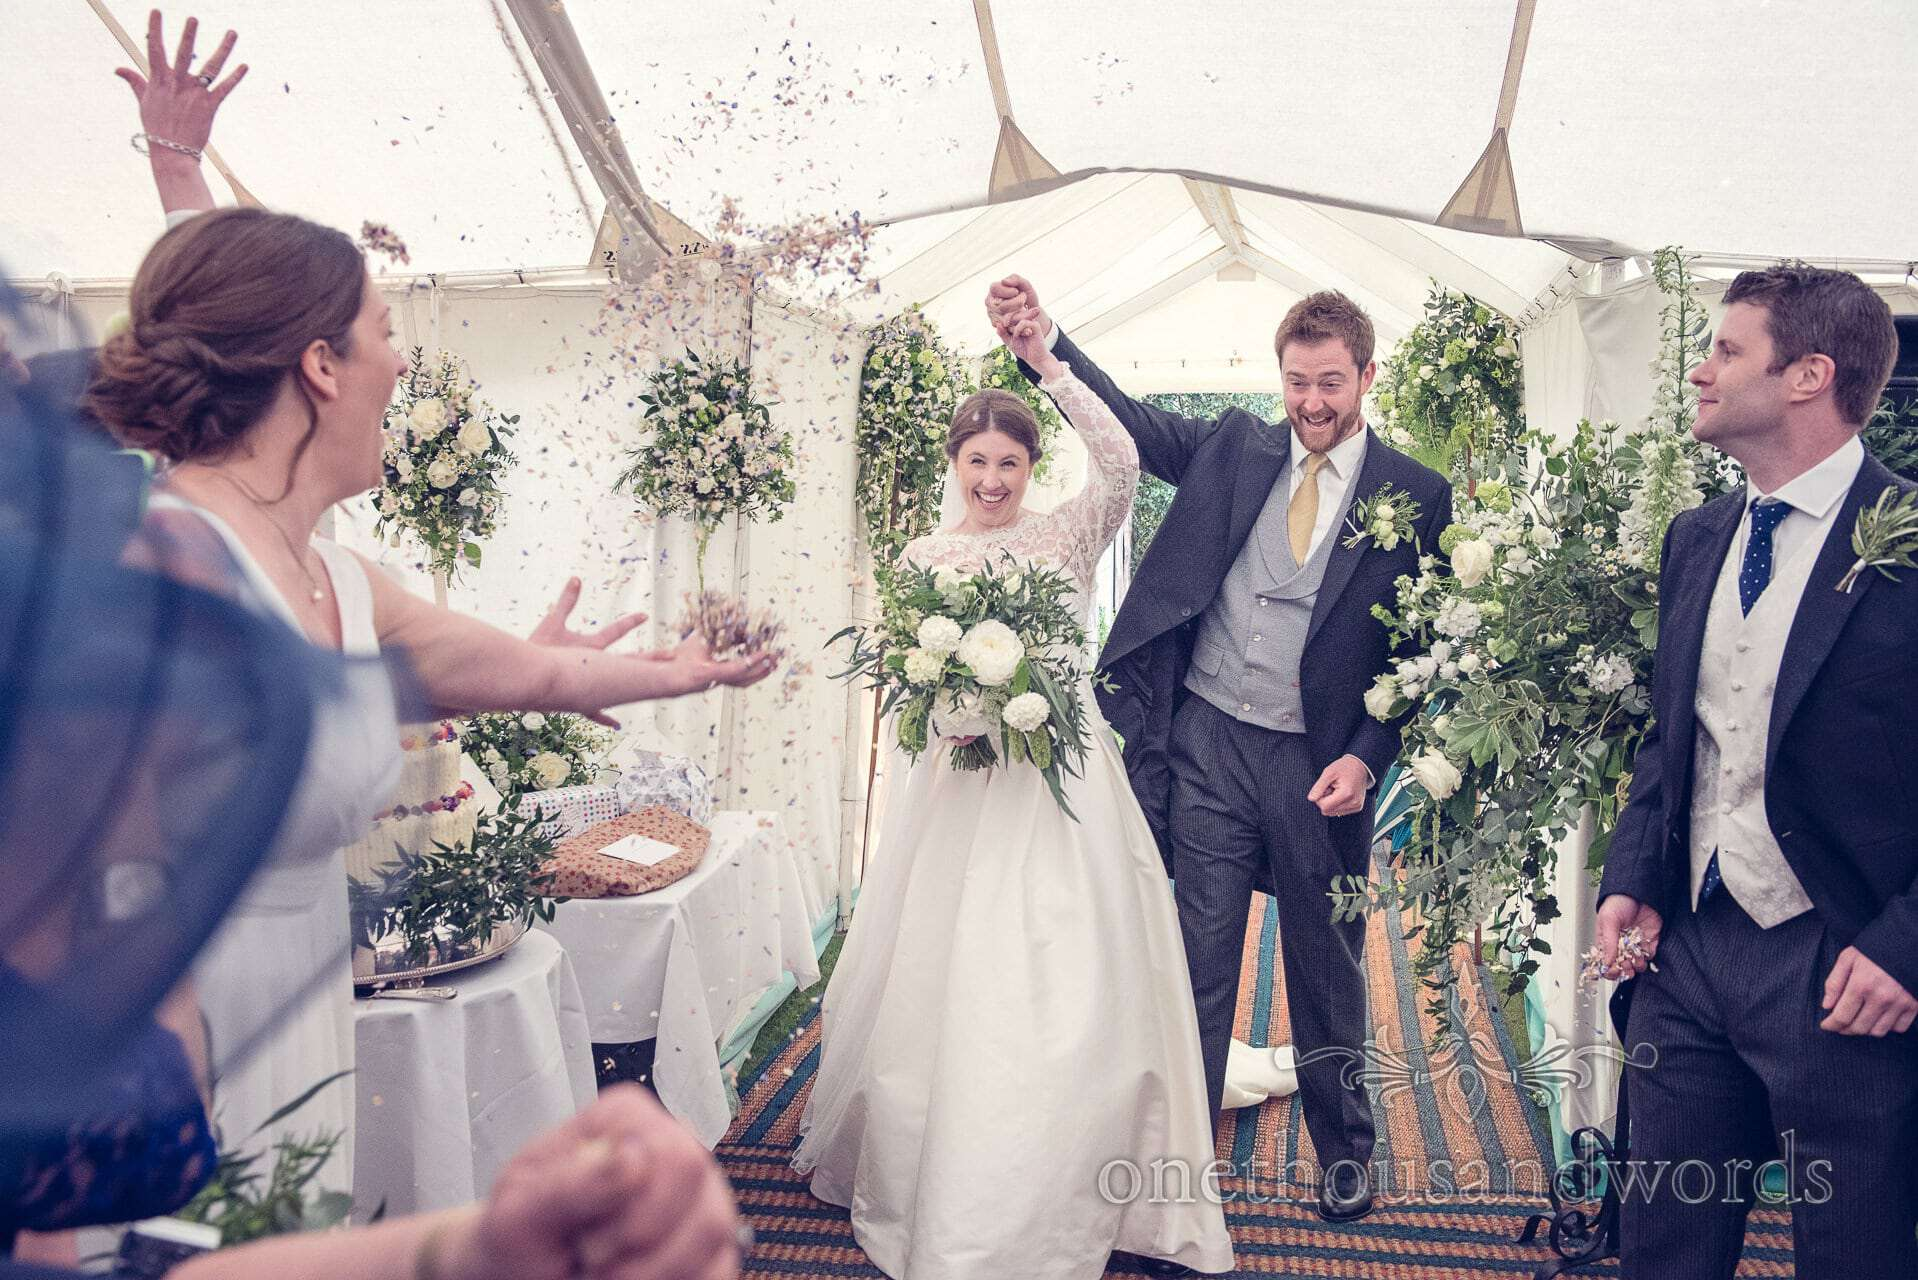 Wedding confetti with bride and groom in marquee